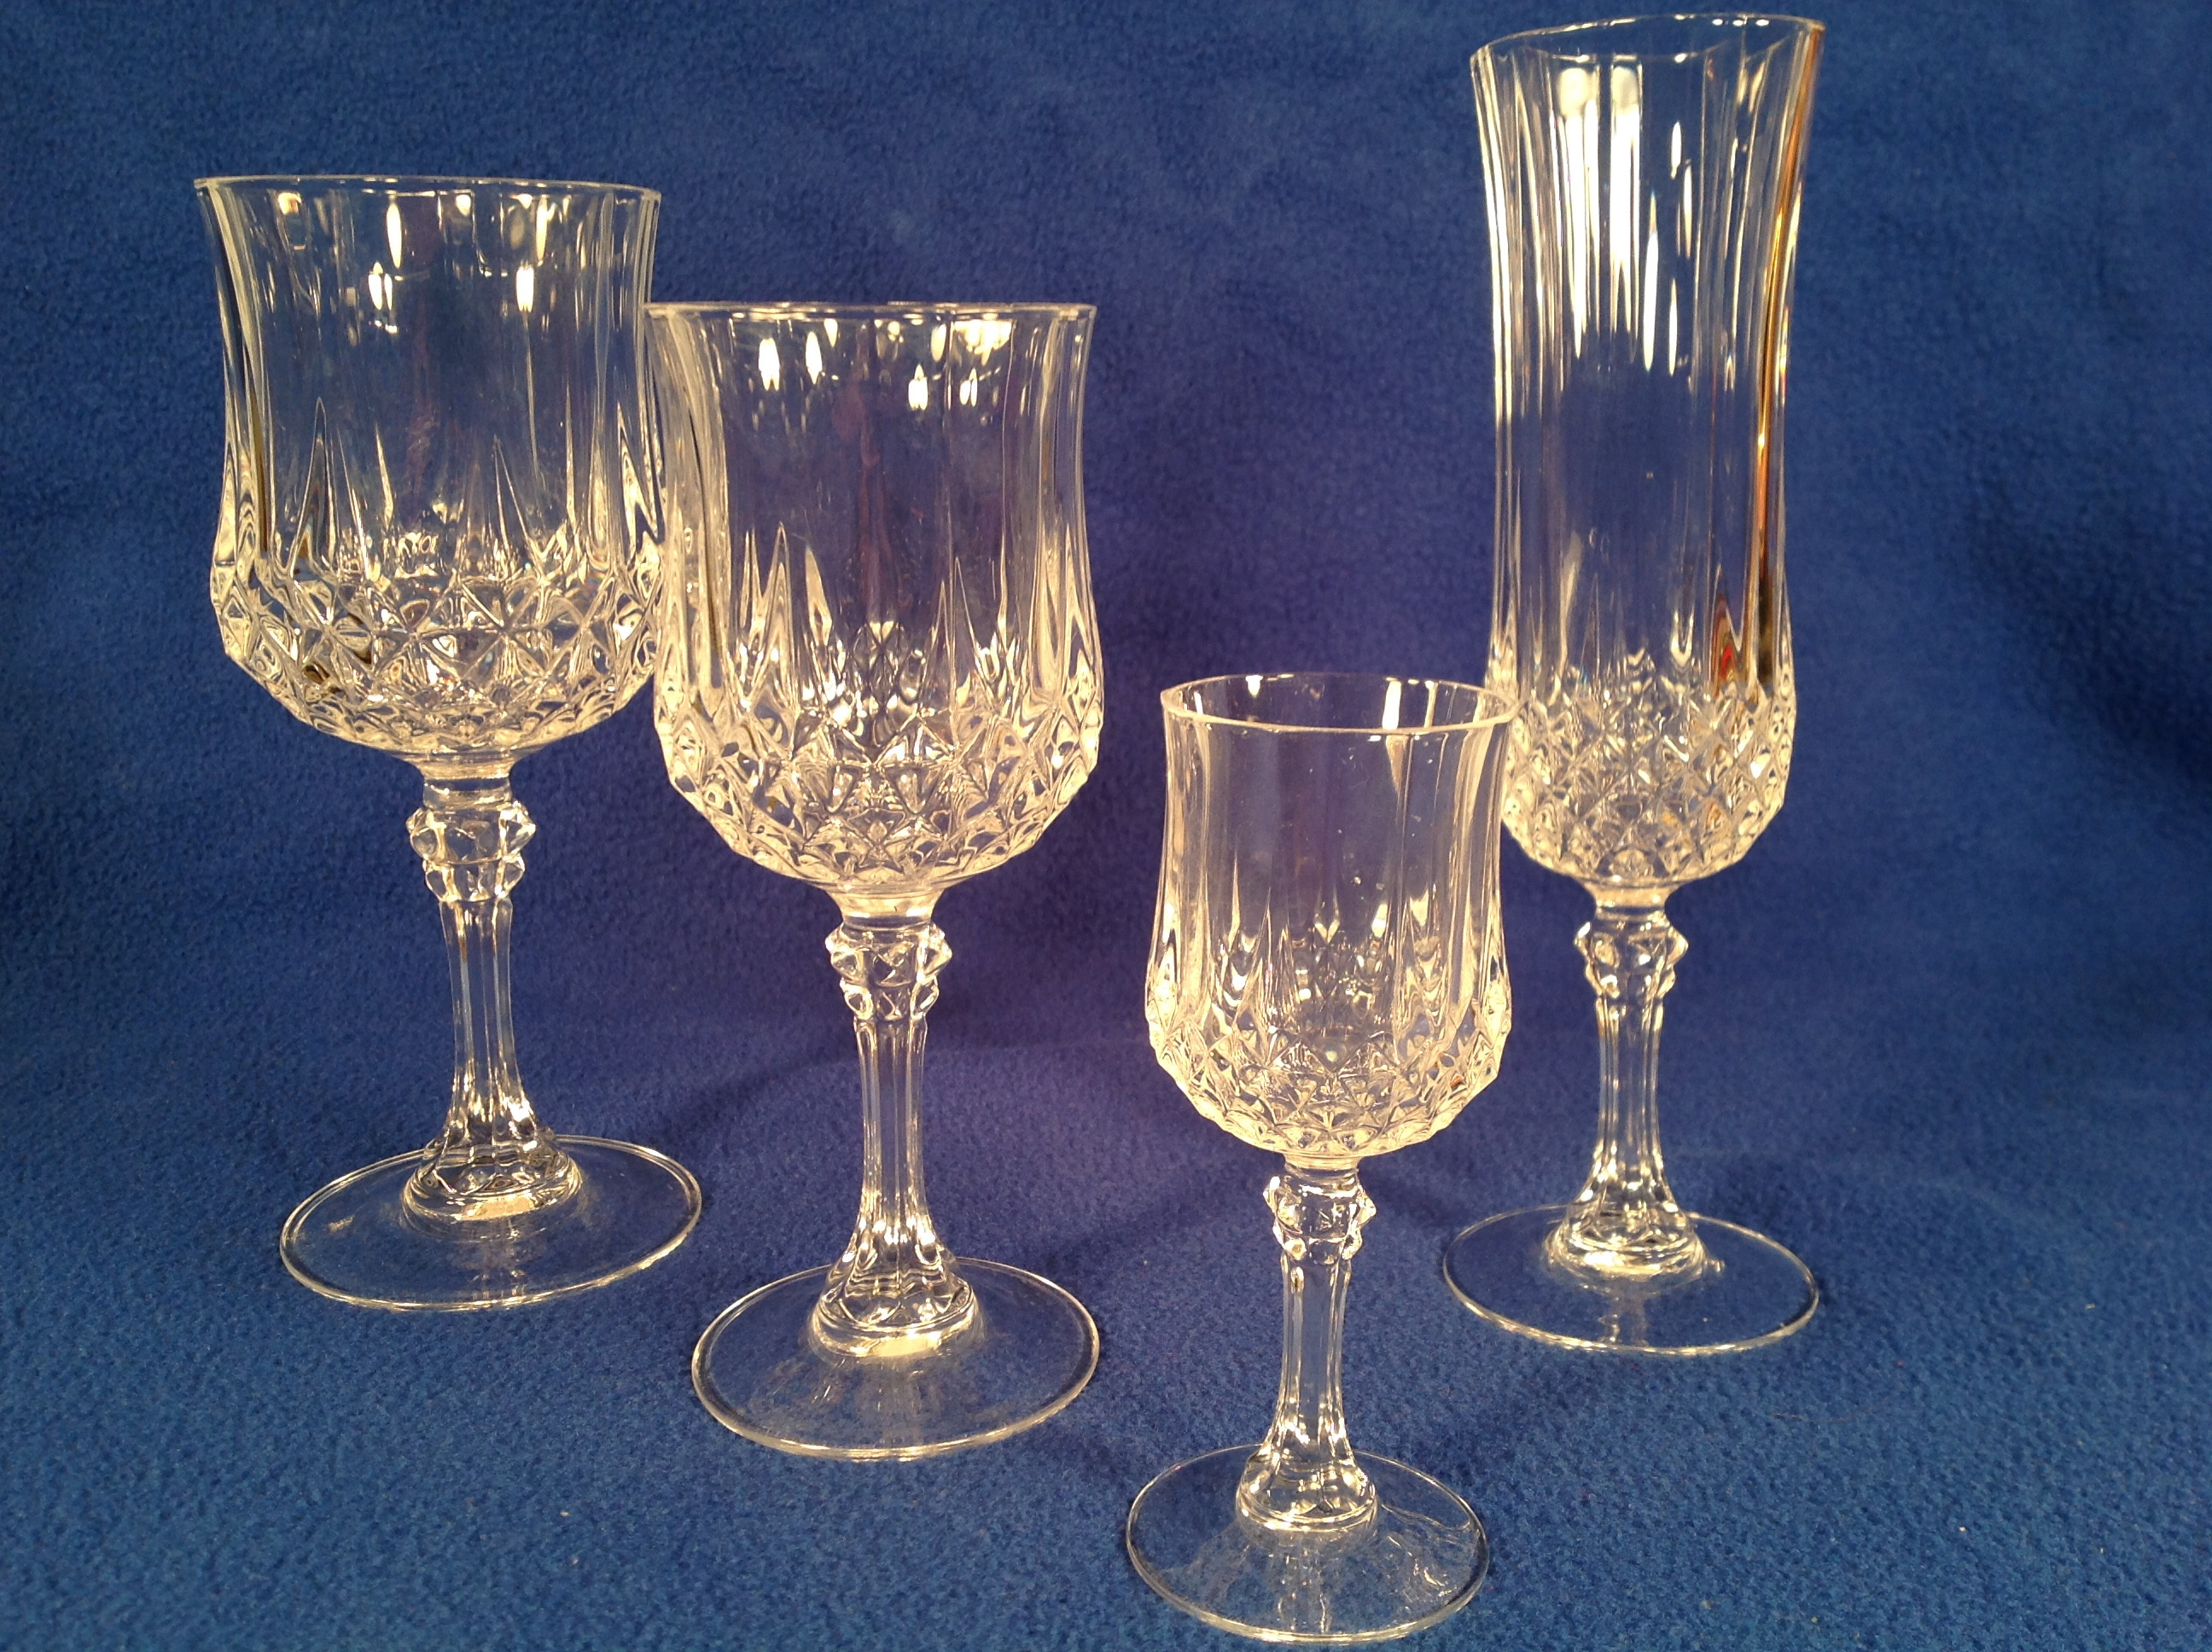 cristal d arques vase of crystal fine glass time4us2retire within cristal darques 35 cristaldarquesstemware